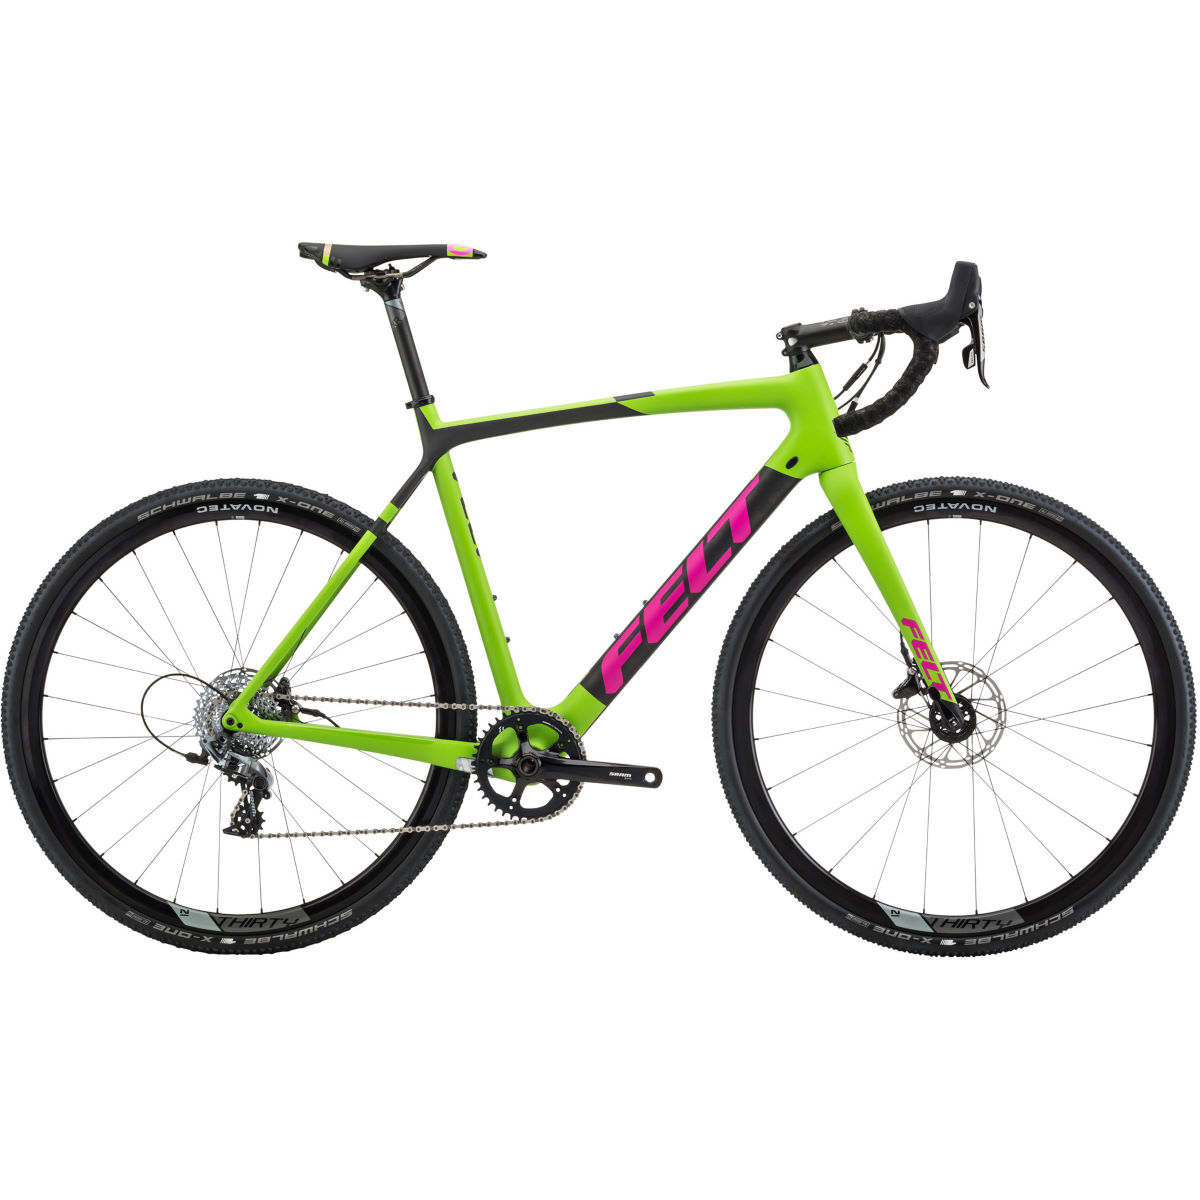 Vélo de cyclo-cross Felt F4X (2018) - 50cm Stock Bike